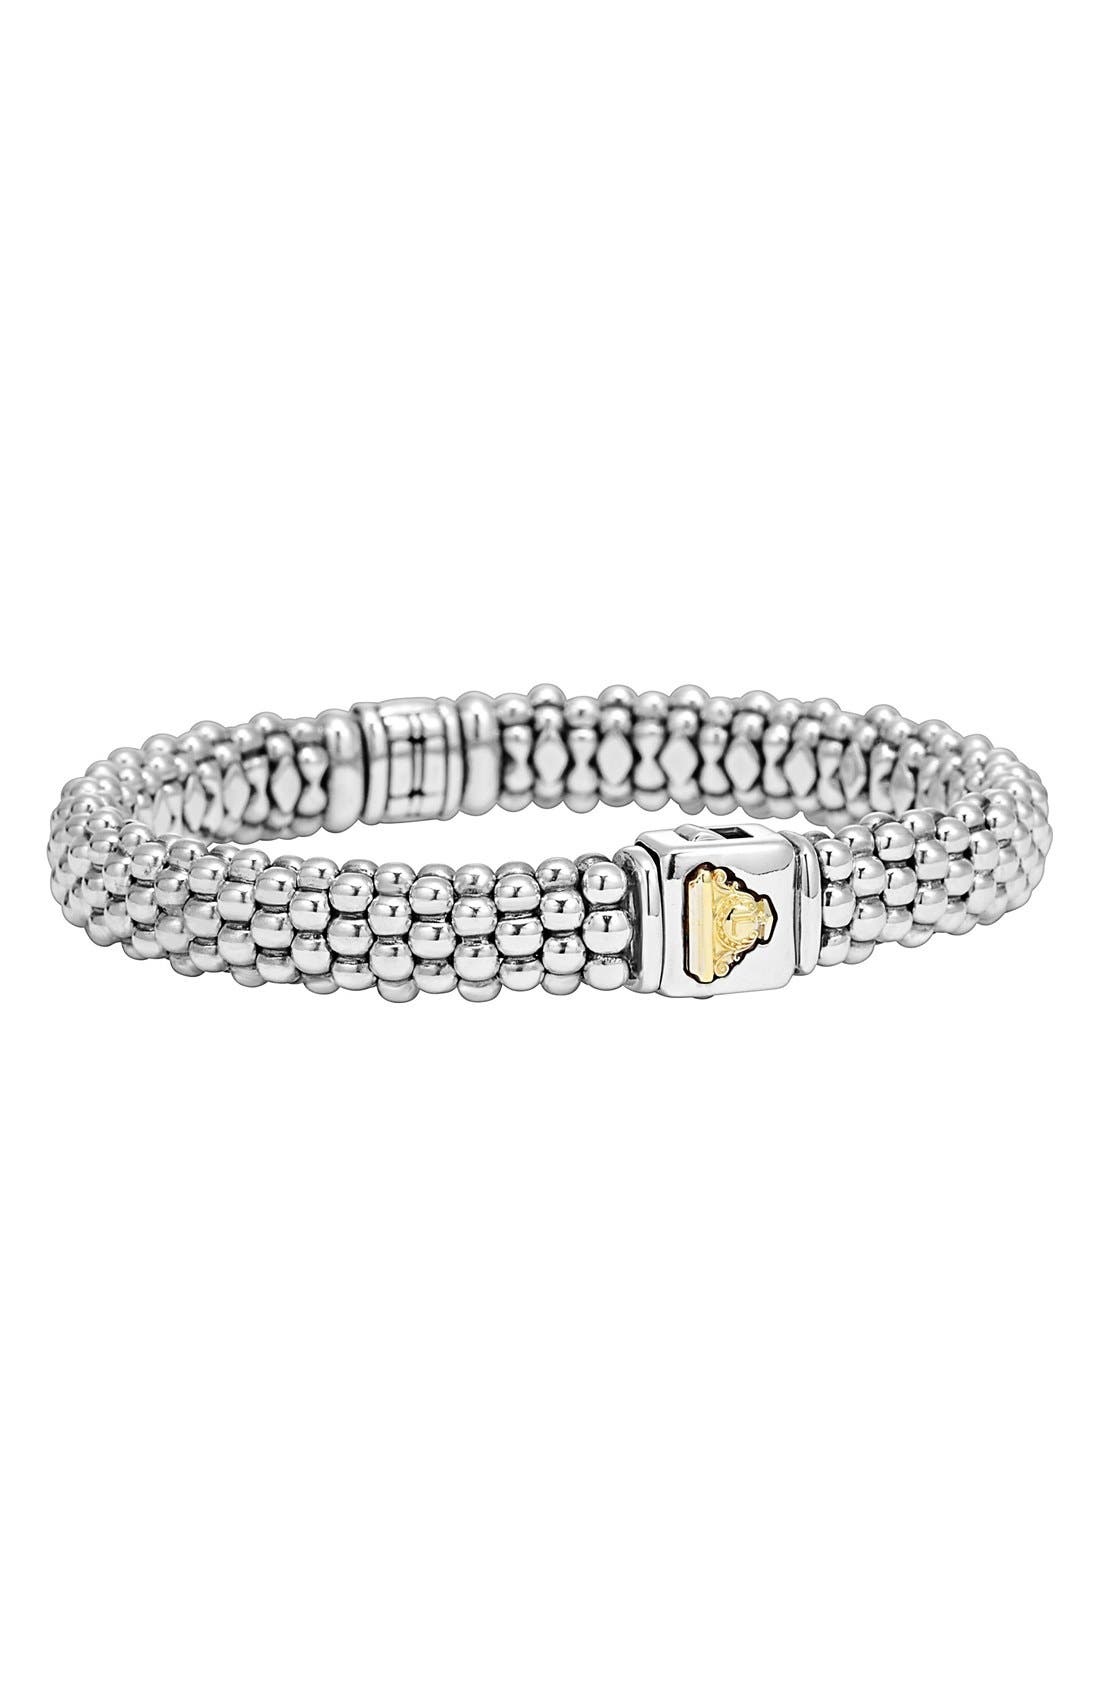 Diamond & Caviar Station Bracelet,                             Alternate thumbnail 4, color,                             040